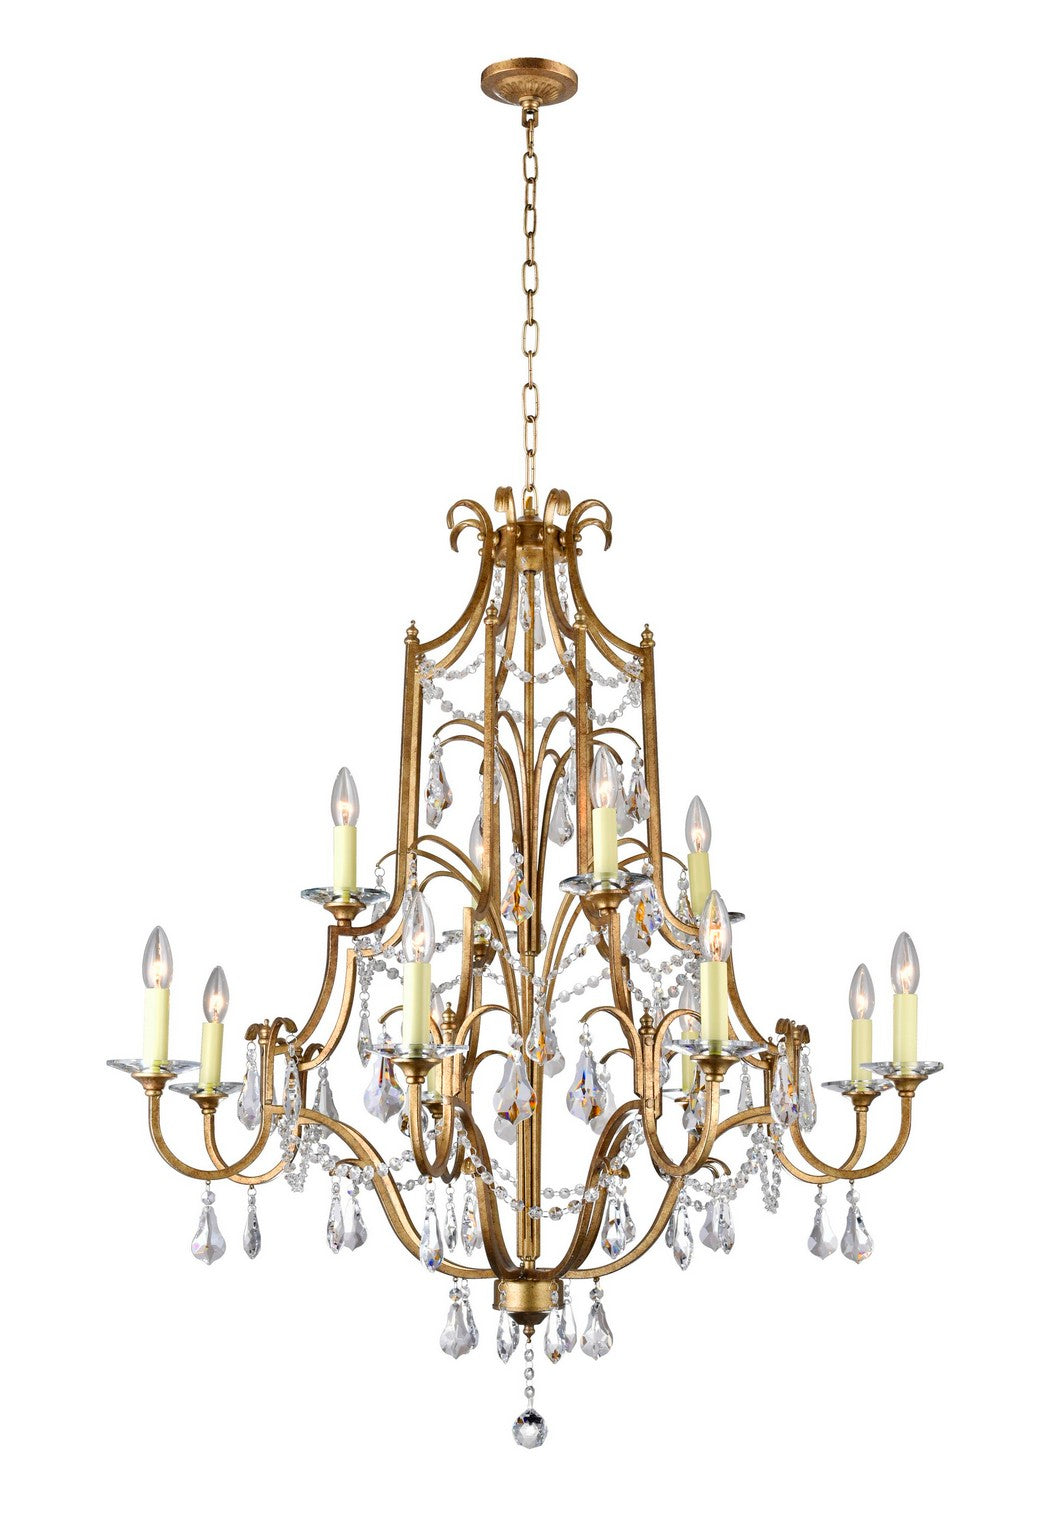 12 LIGHT UP CHANDELIER WITH OXIDIZED BRONZE FINISH - Dream art Gallery